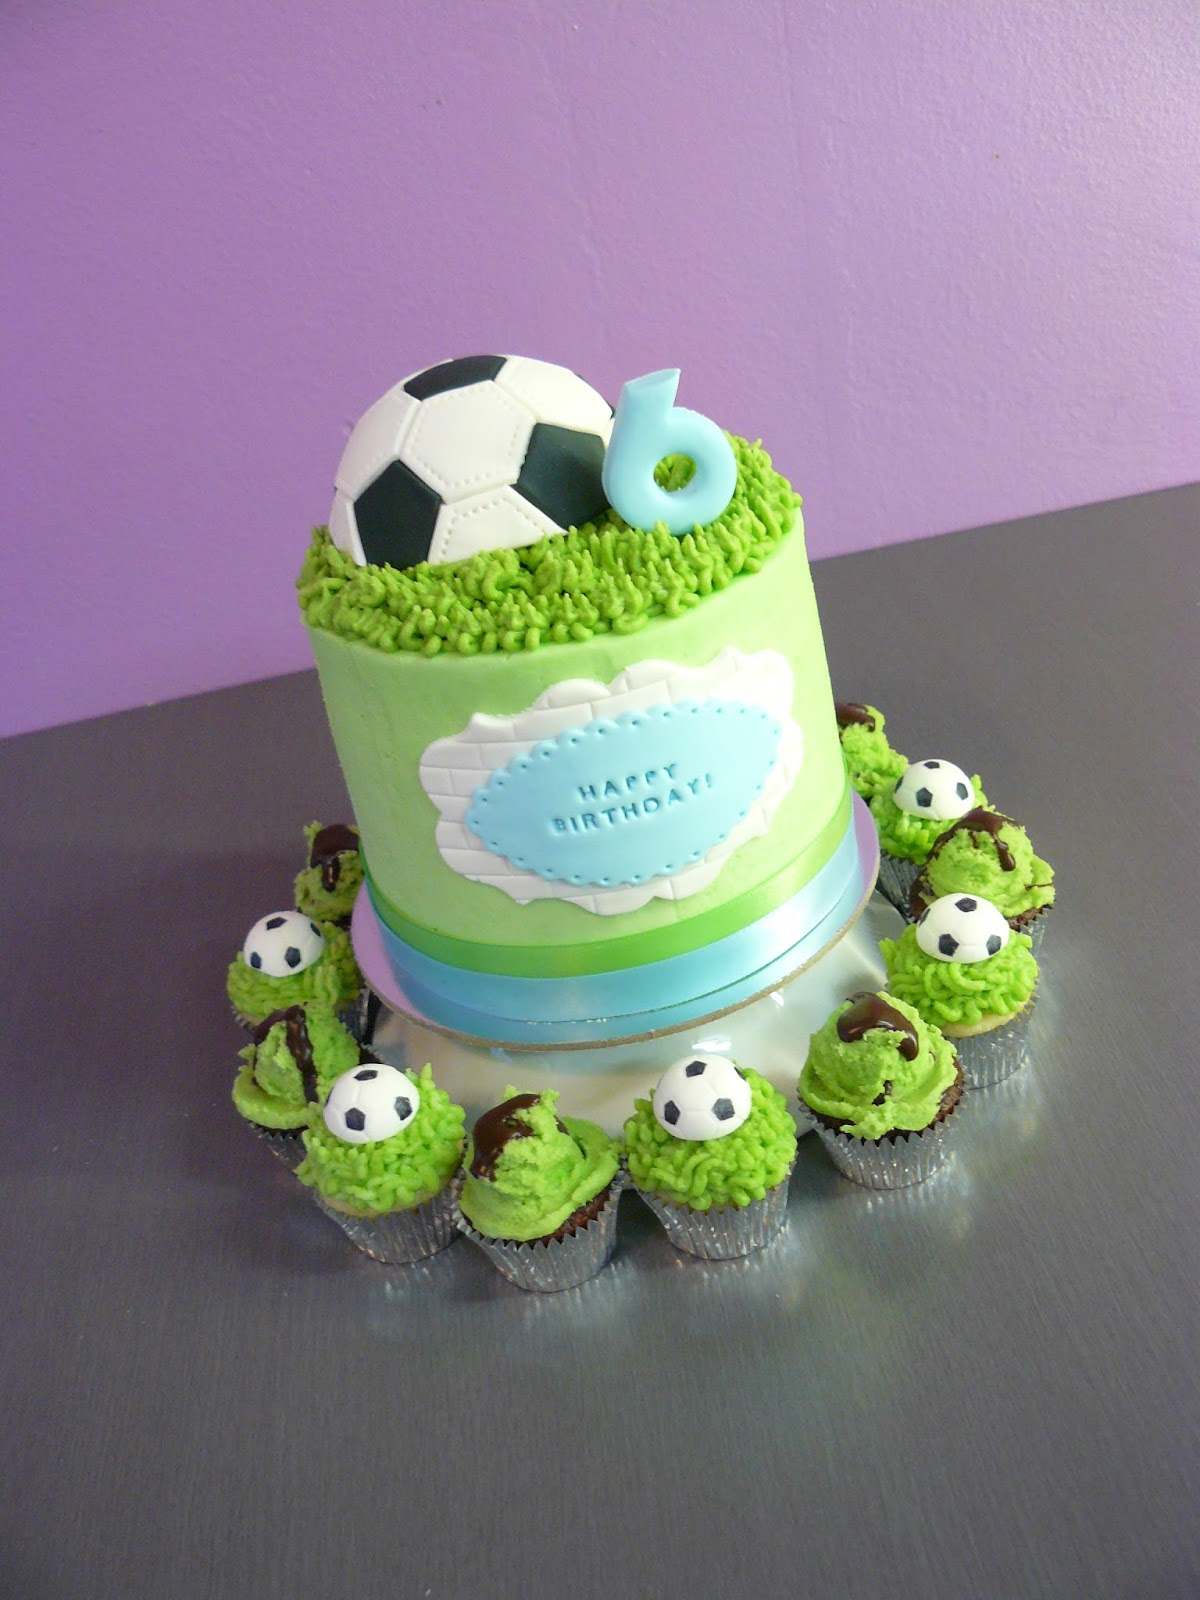 The Cup Cake Taste Brisbane Cupcakes Soccer Cake And